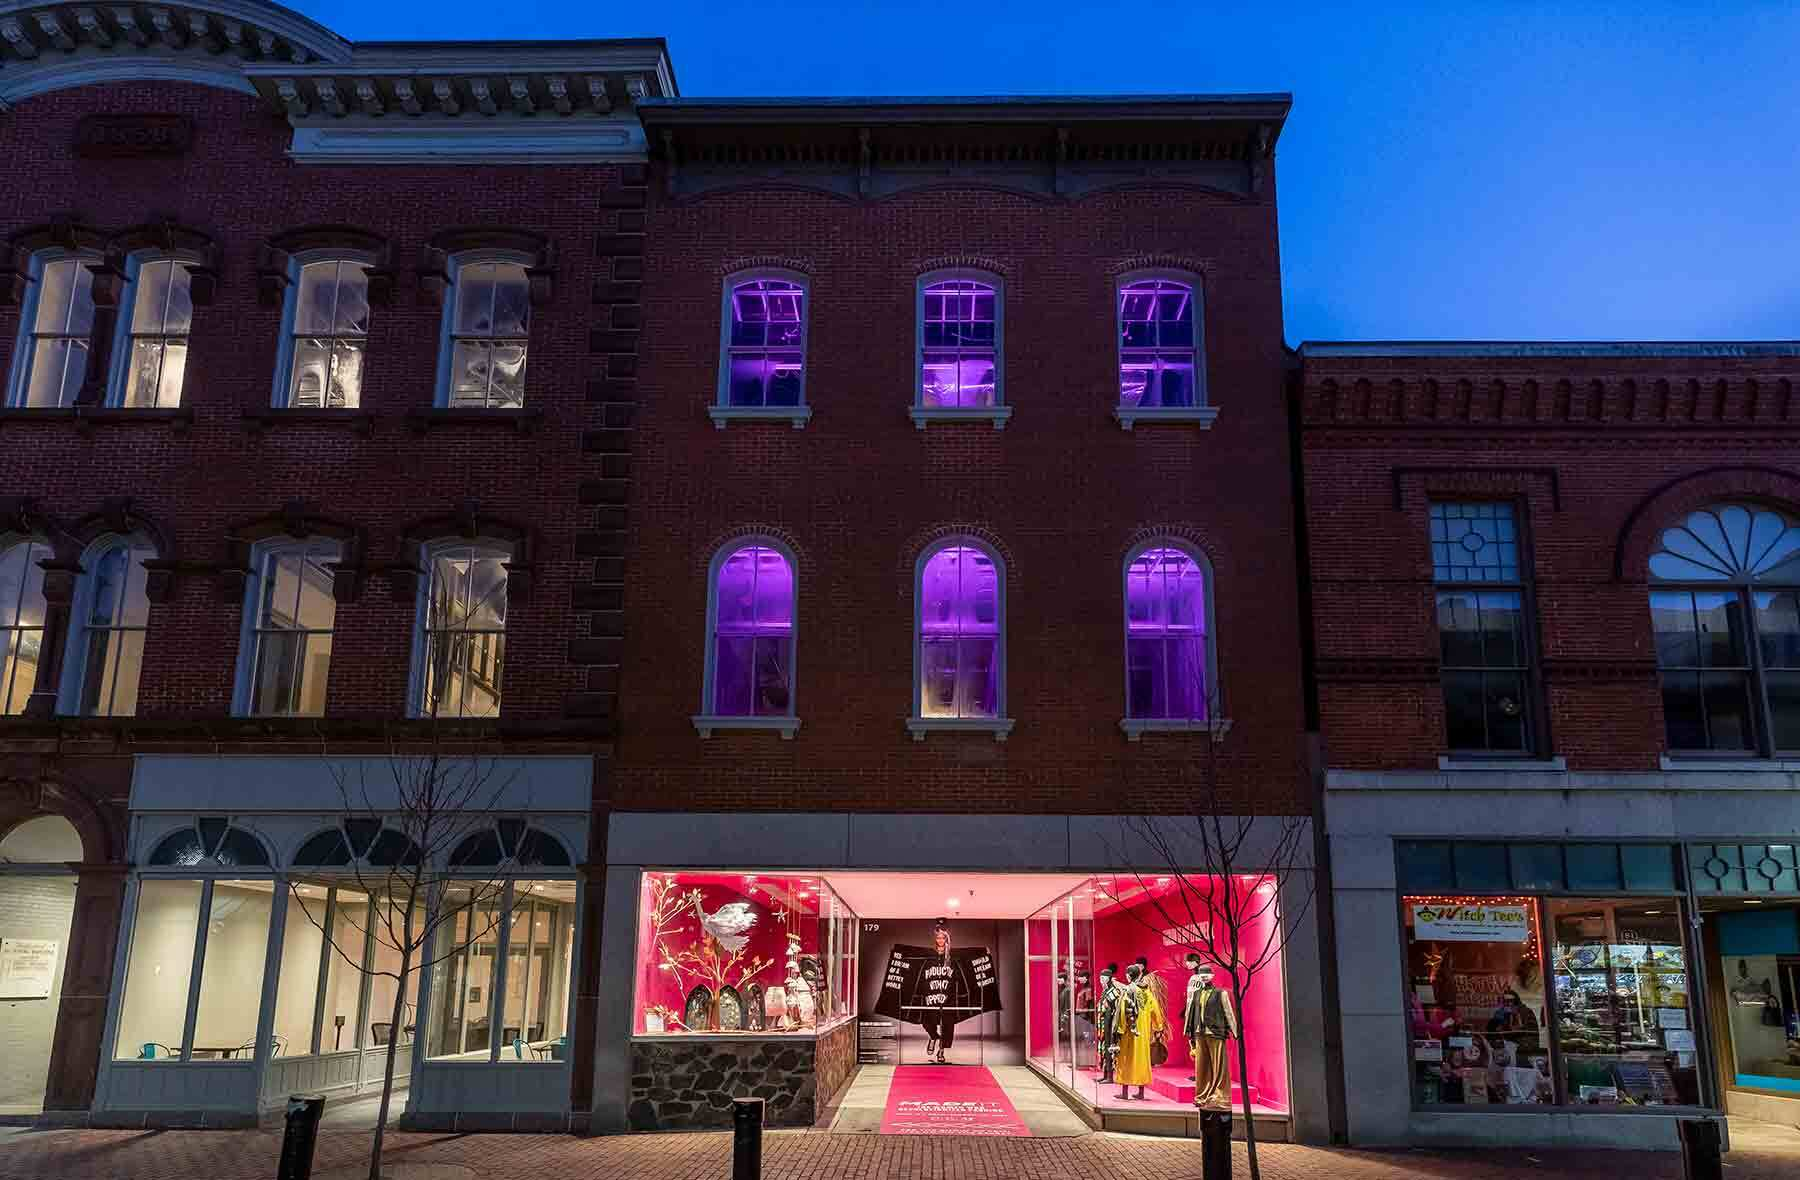 A night time view of a shop window display with pink walls in a brick building.